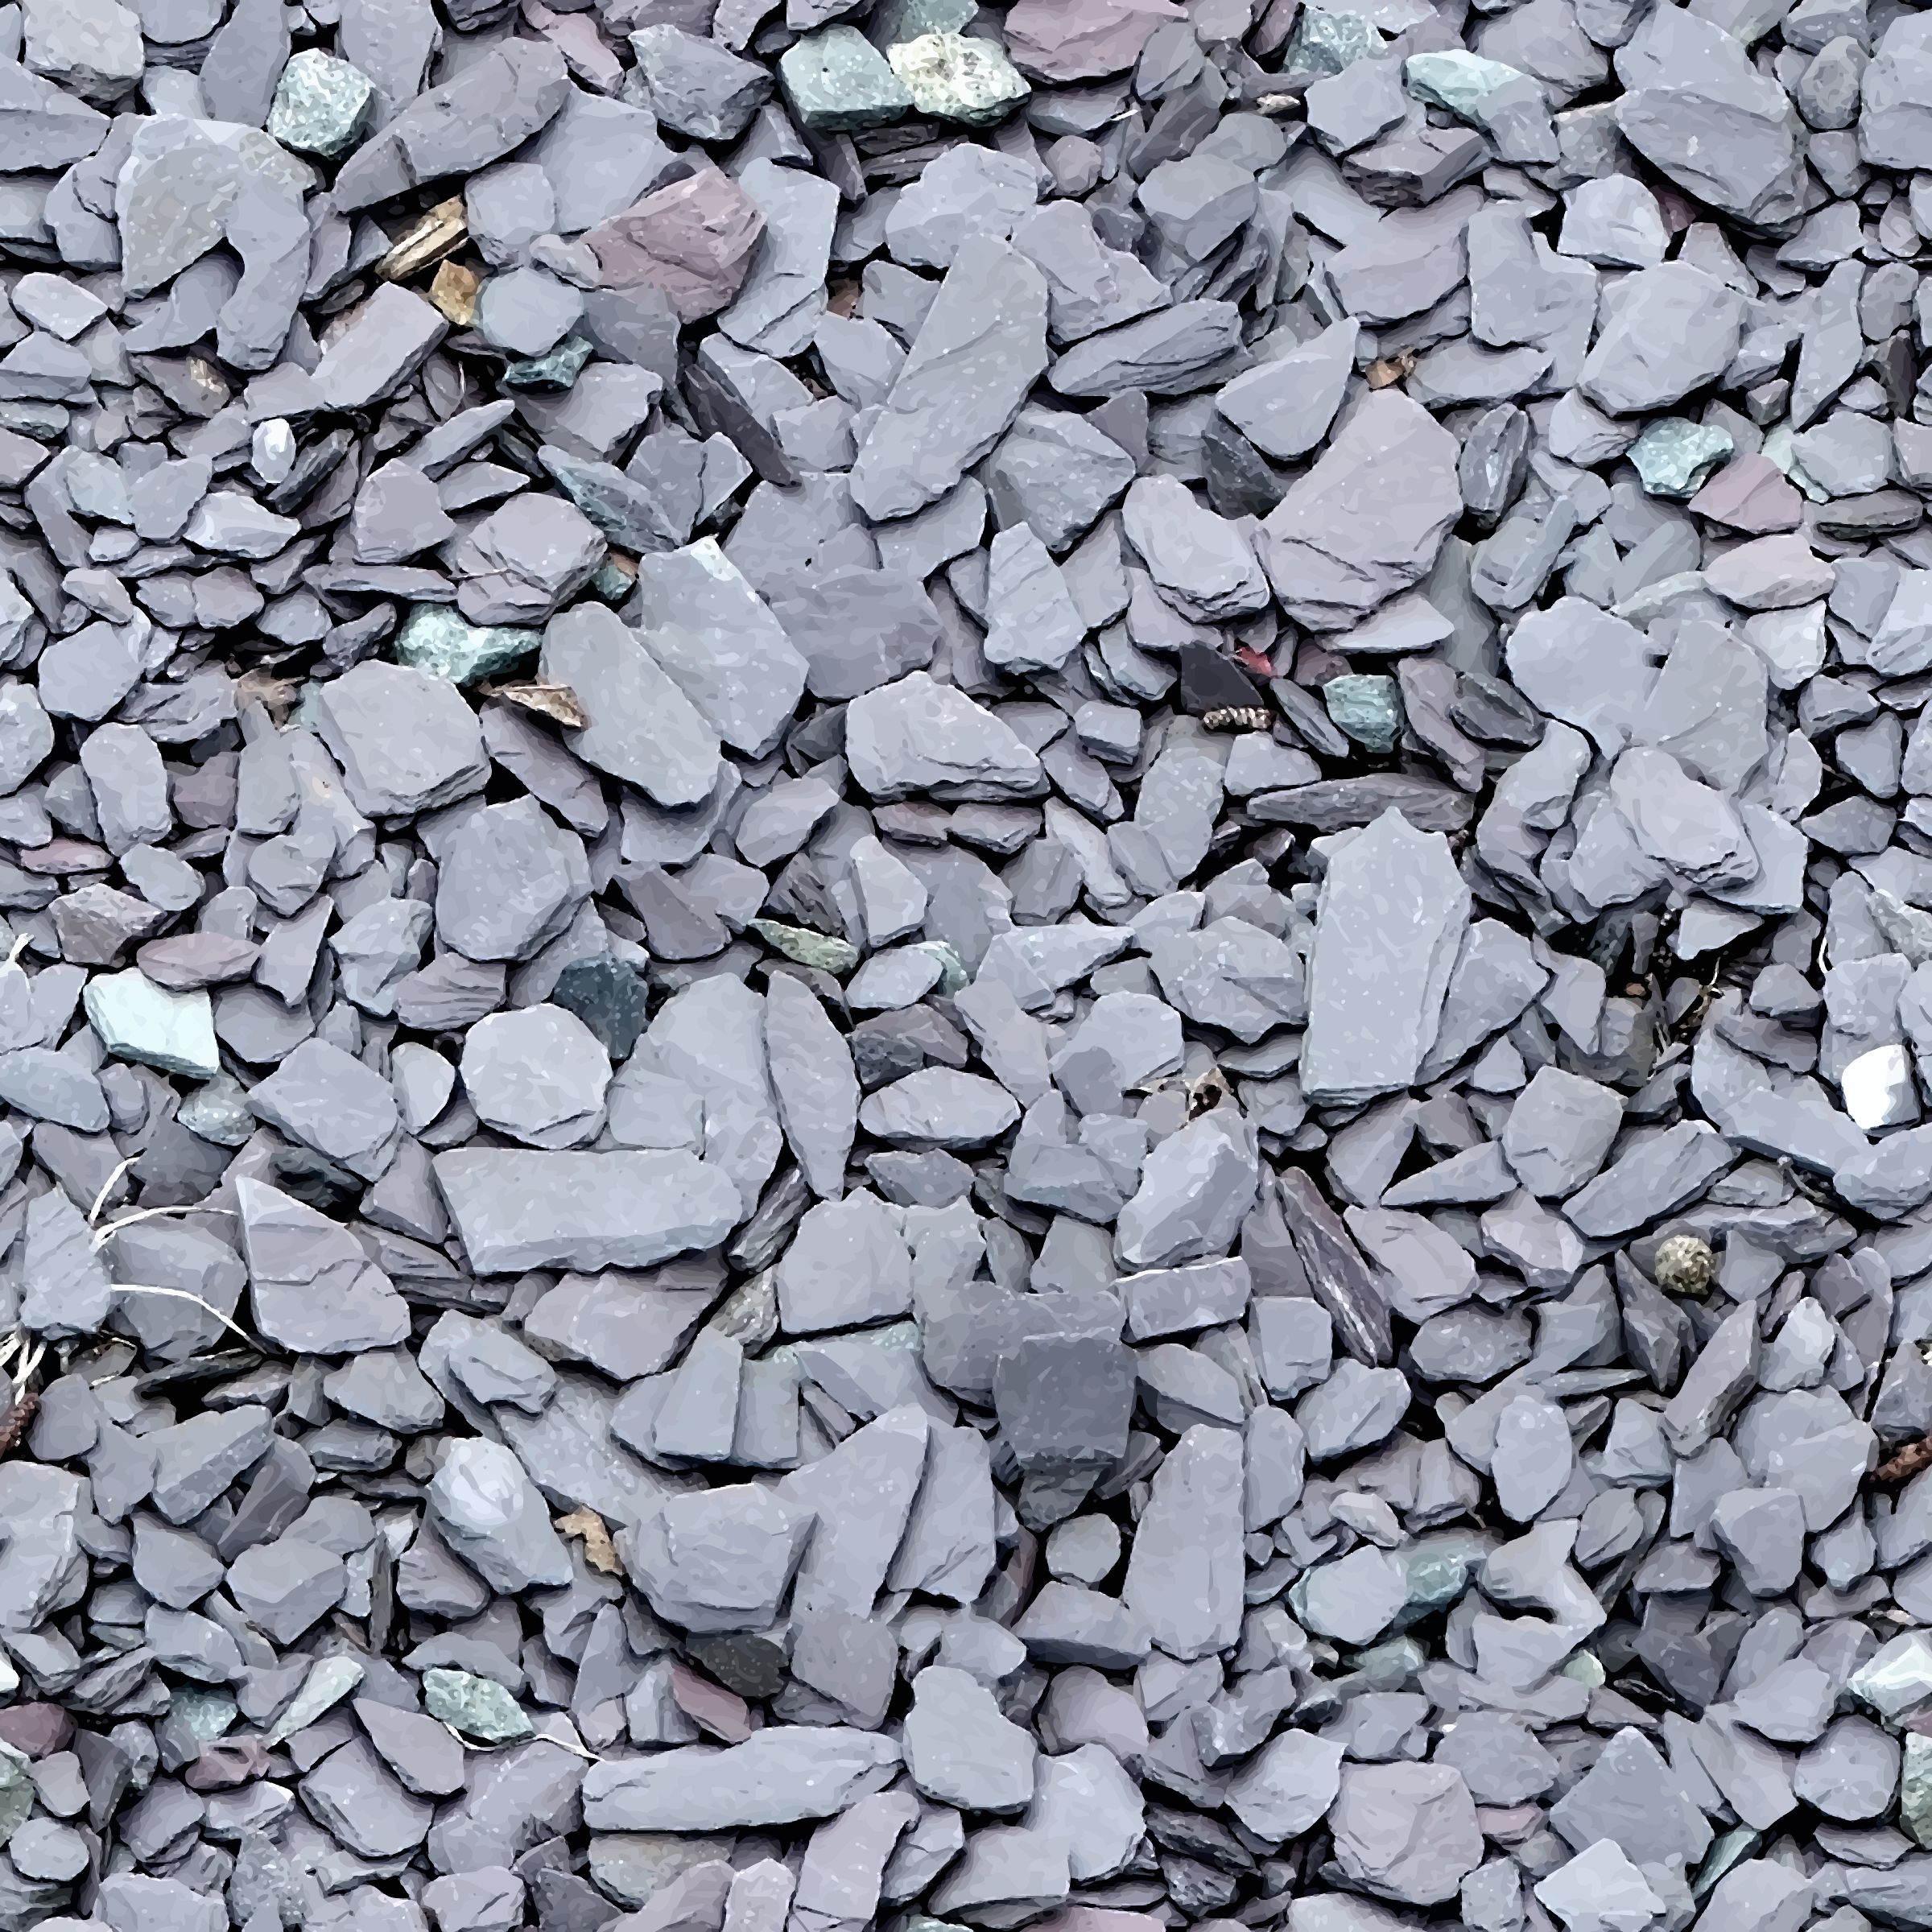 Slate chips by Firkin